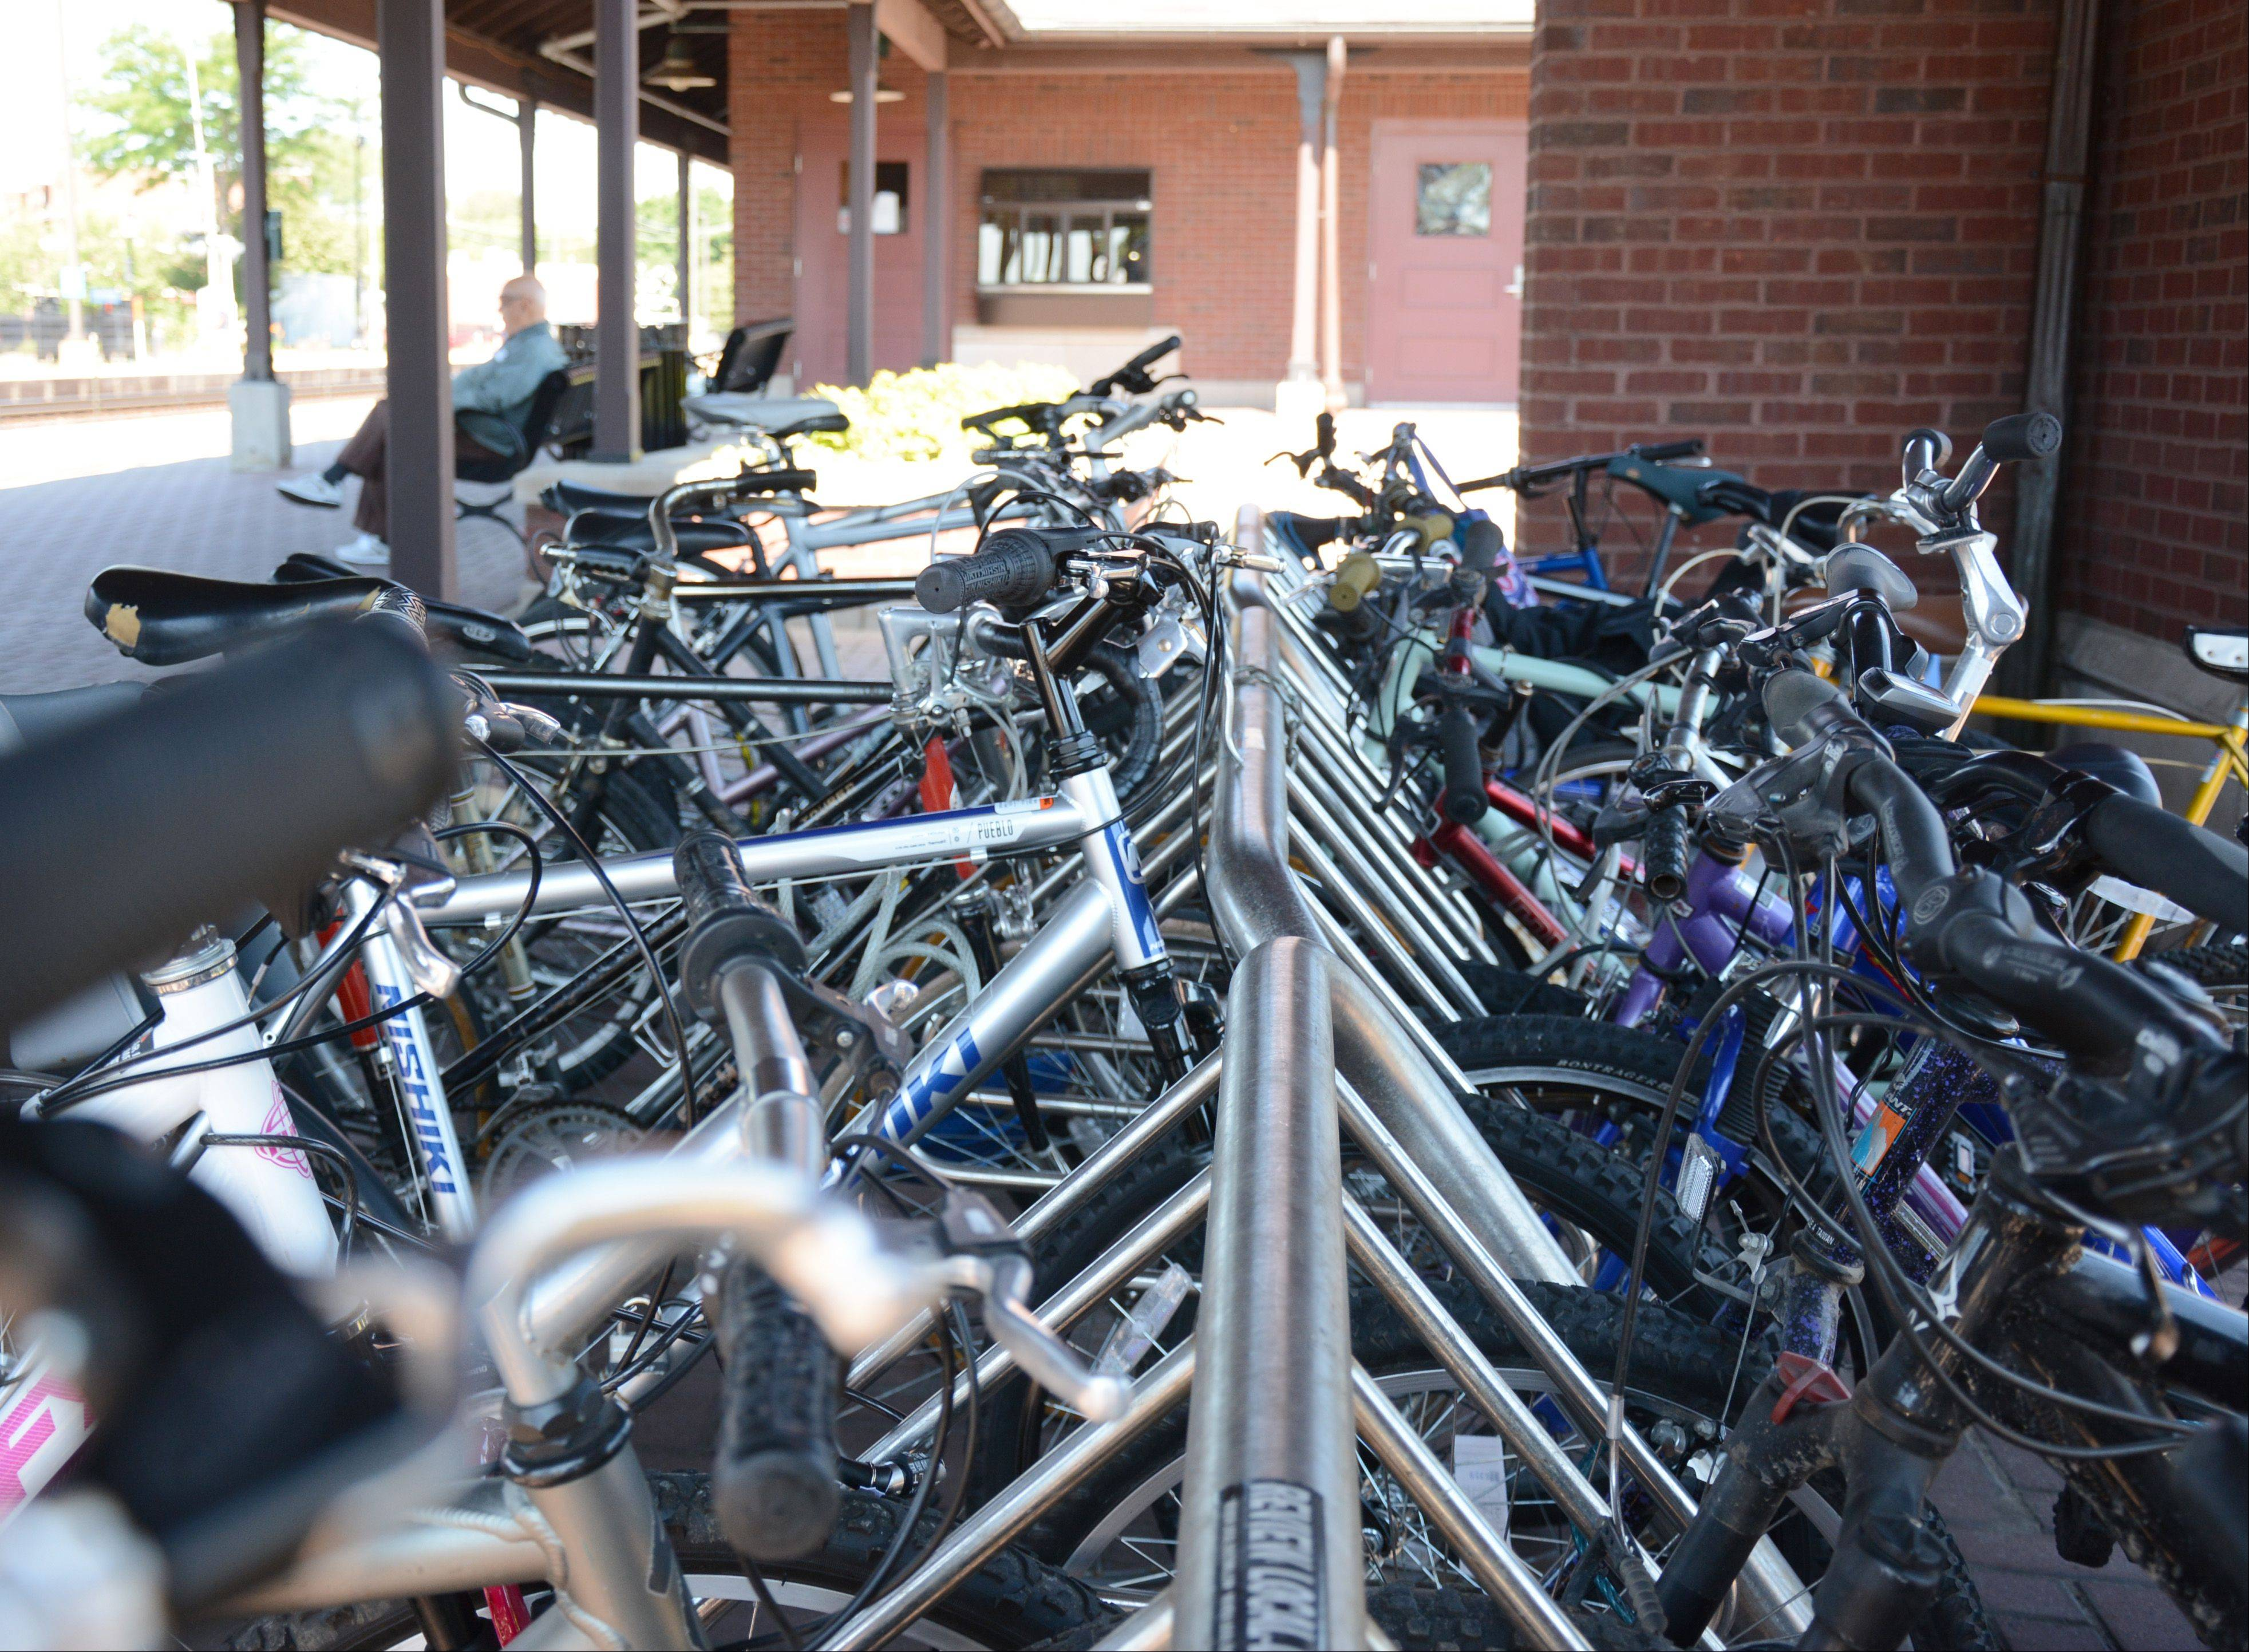 Bikes are locked to a bike rack at the Arlington Heights train station.